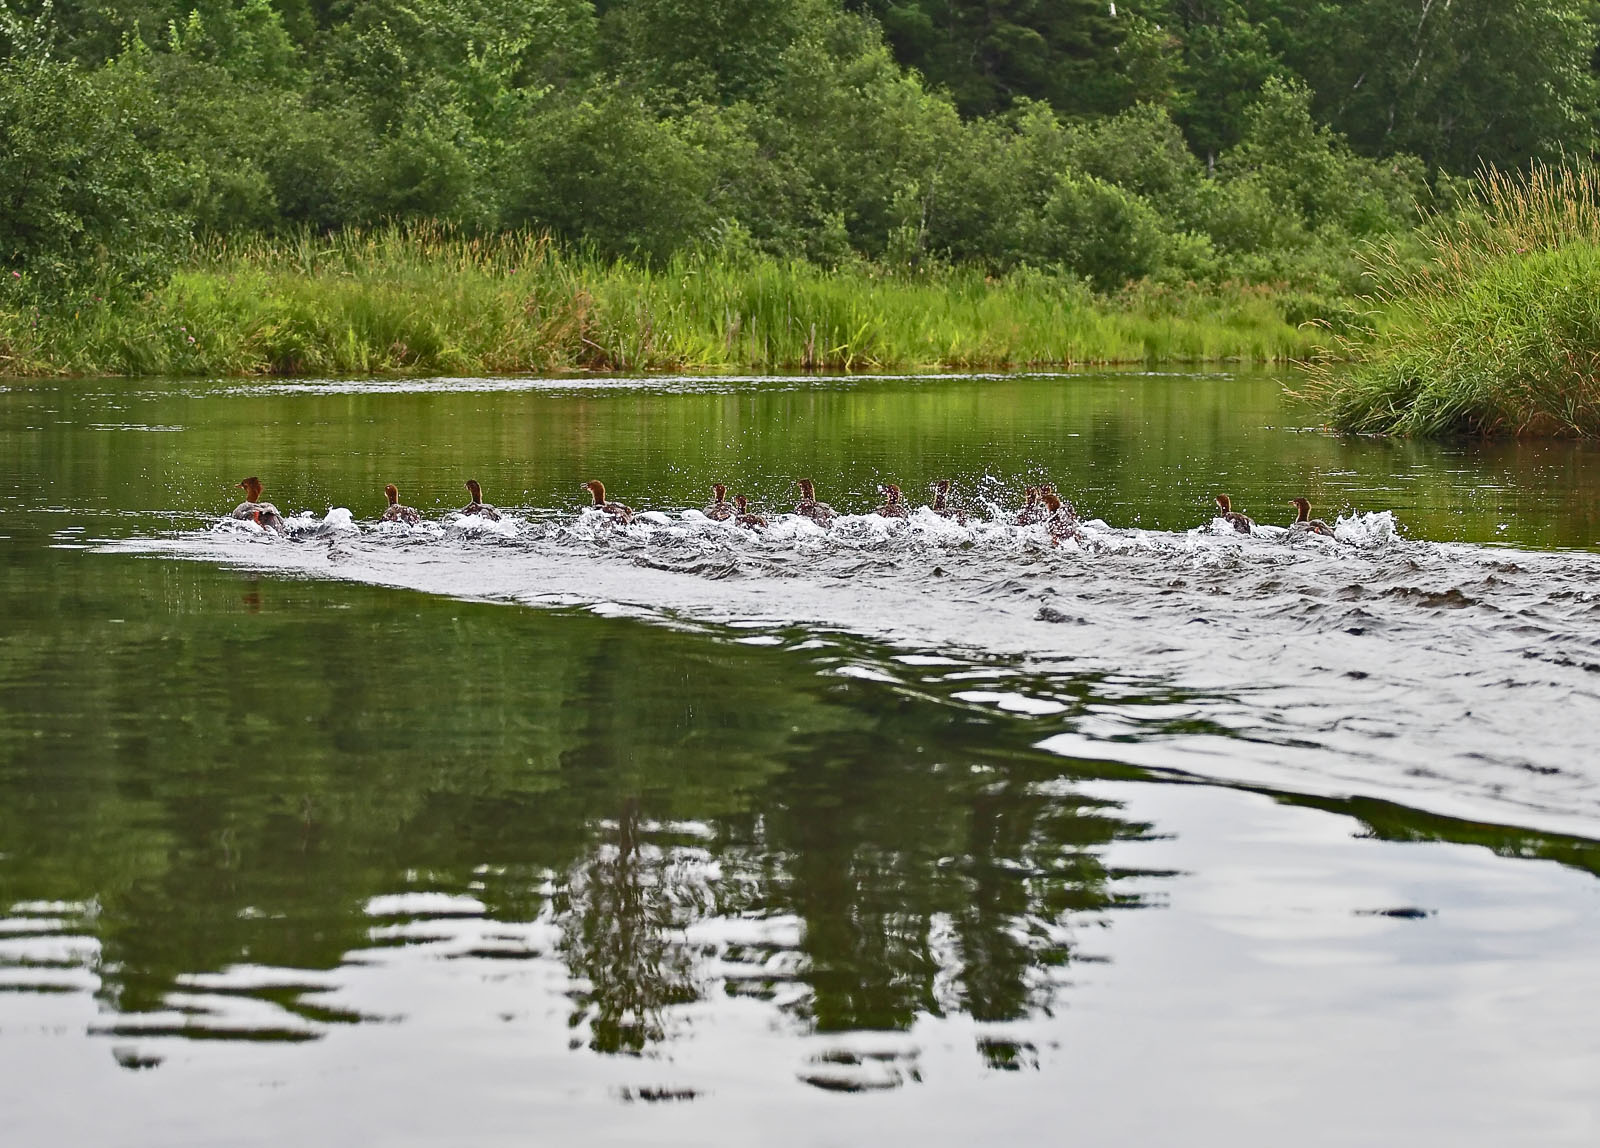 A flock of mergansers flees the canoe. From the Namekagon River in Wisconsin.